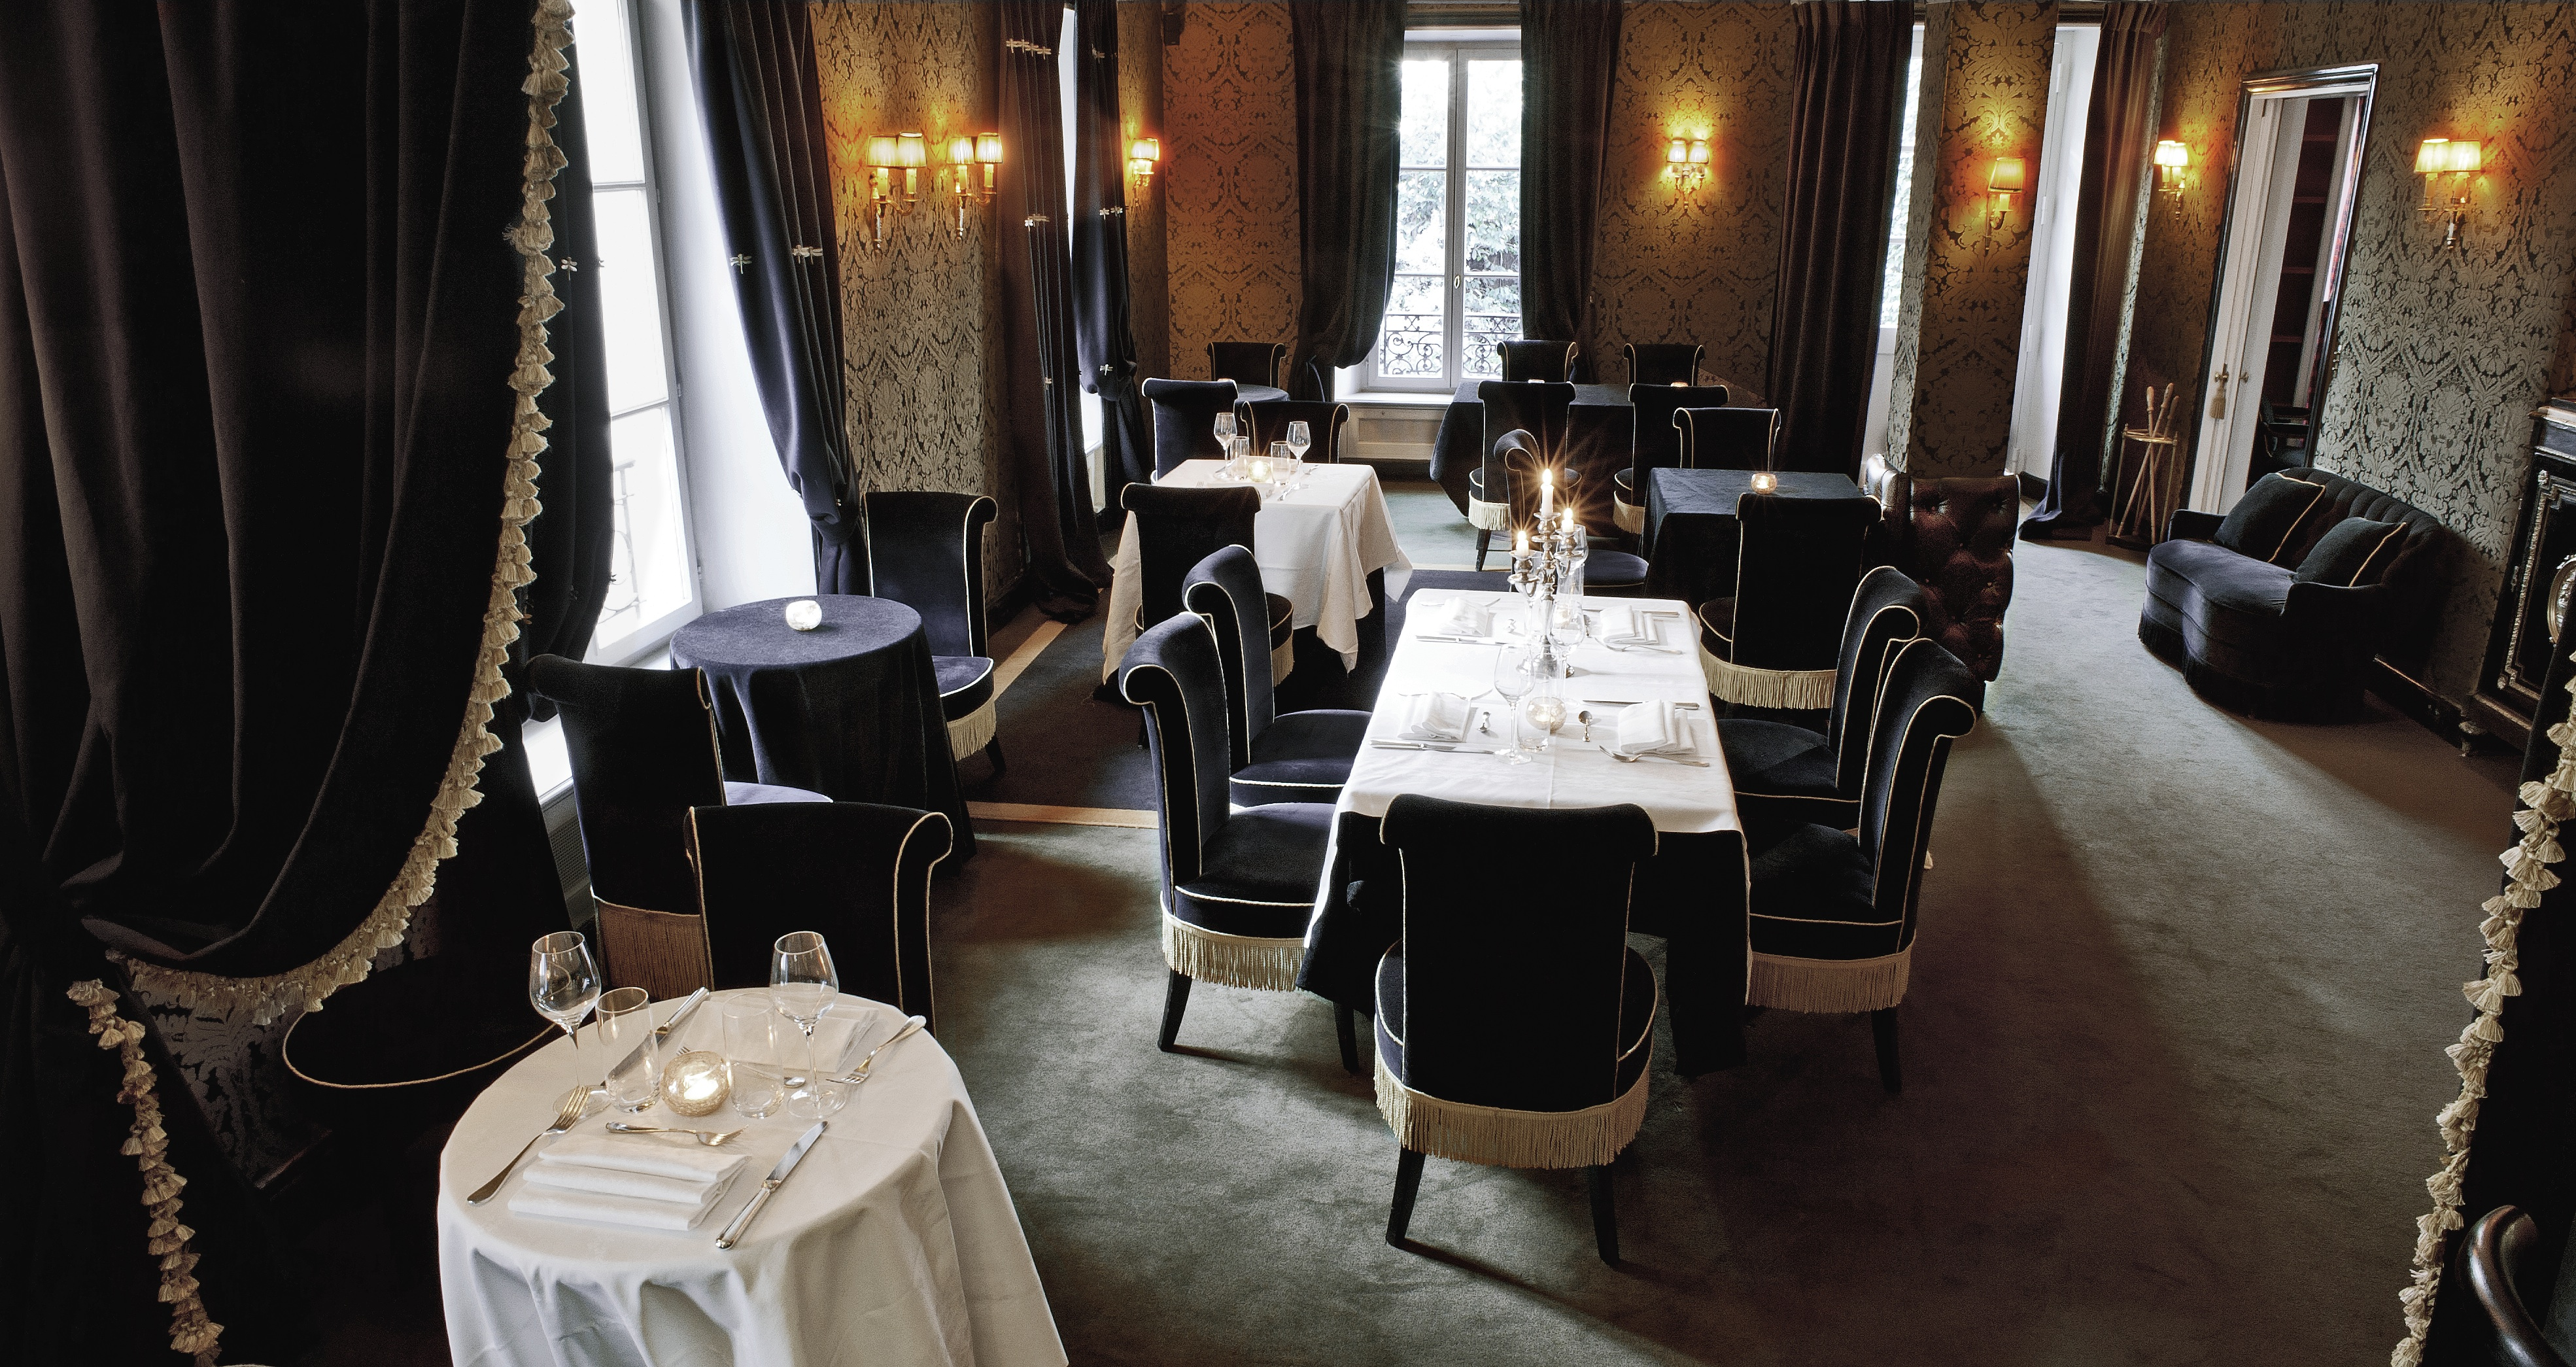 Restaurant-Dining-Room-Hotel-Particulier-Montmartre